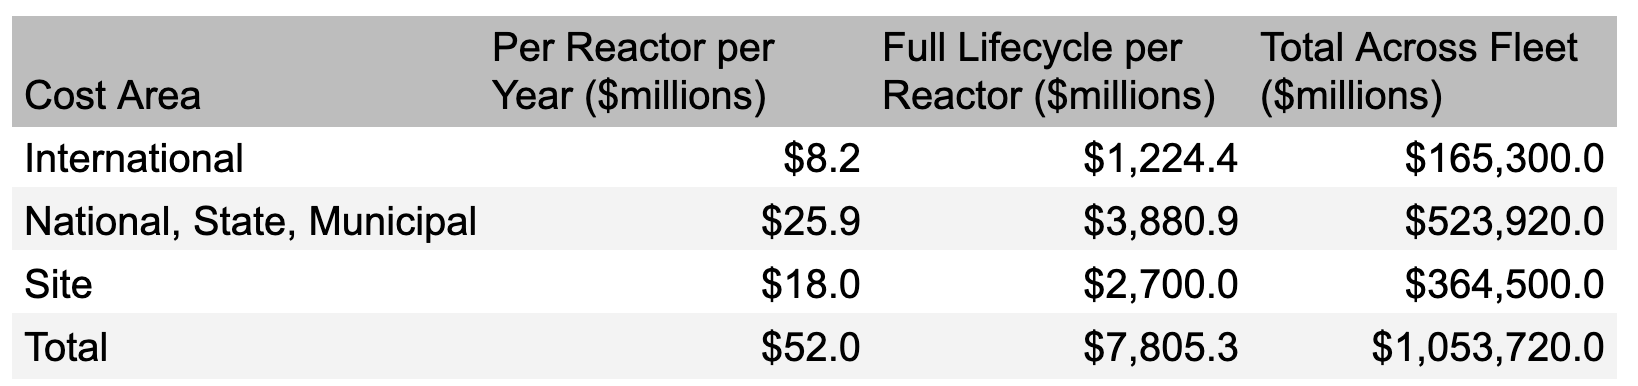 Per reactor allocation of all security costs